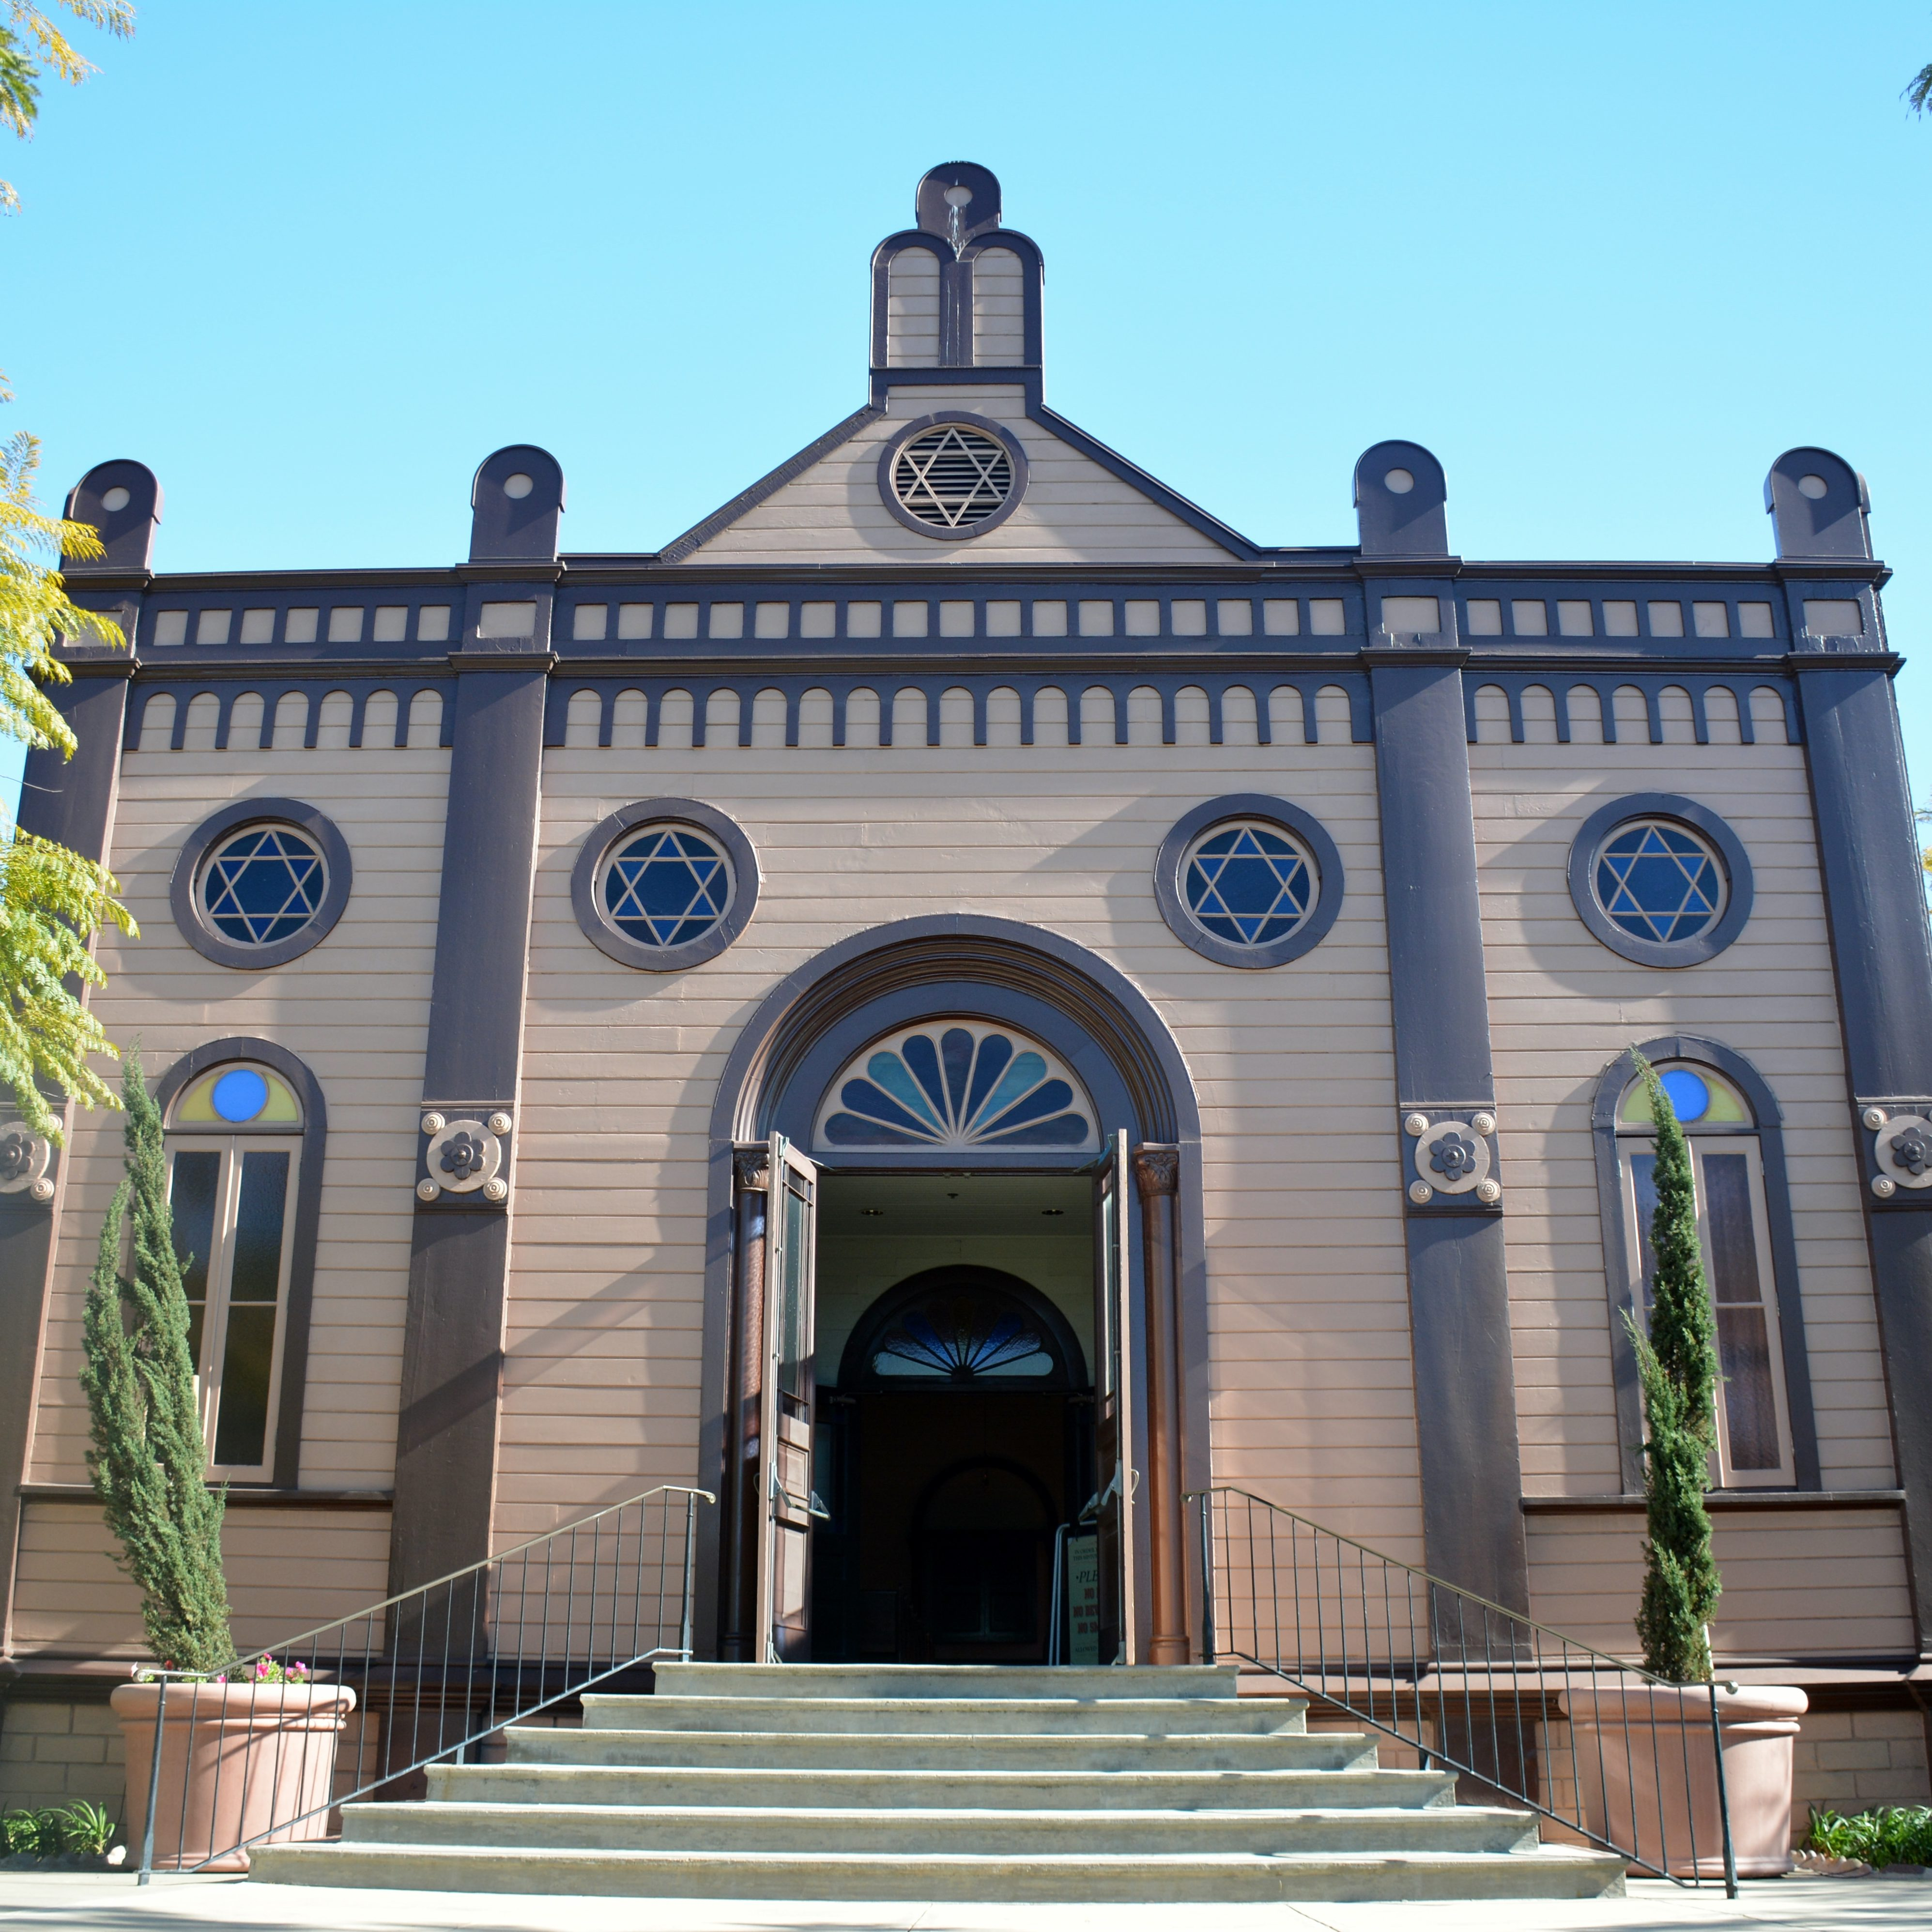 Temple Beth Israel Old Town